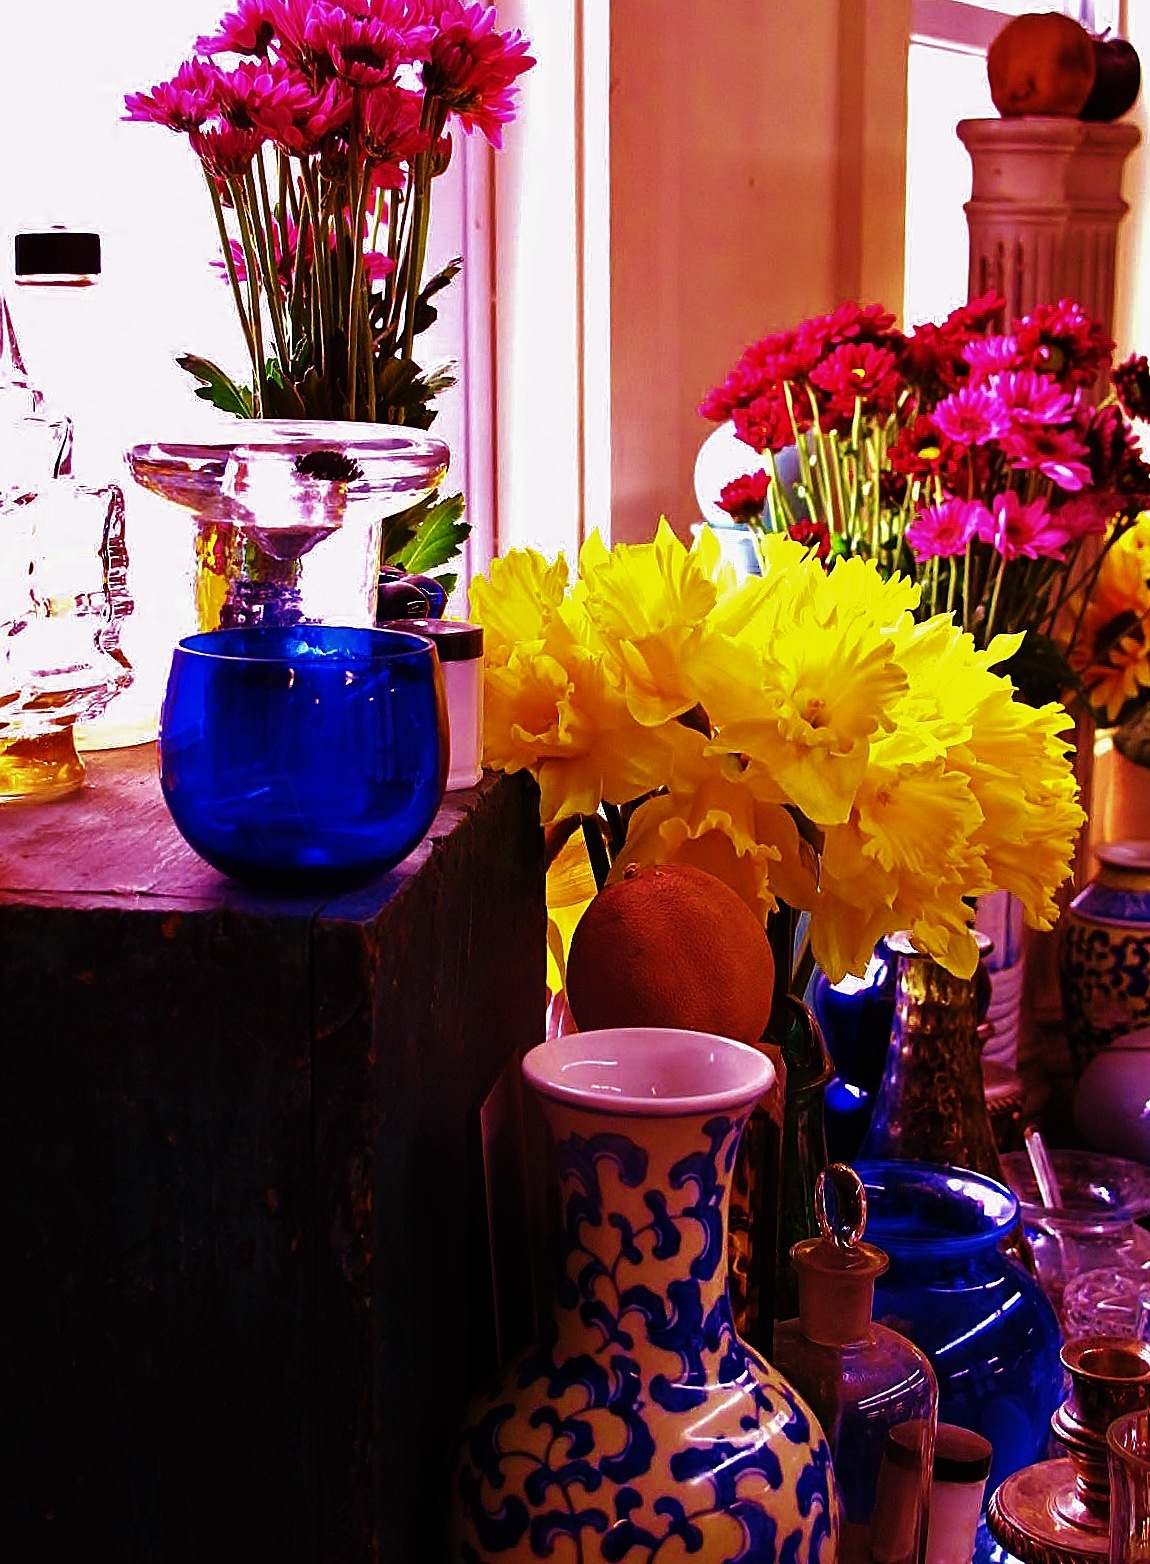 blue glass and flowers  by paulcrimi178